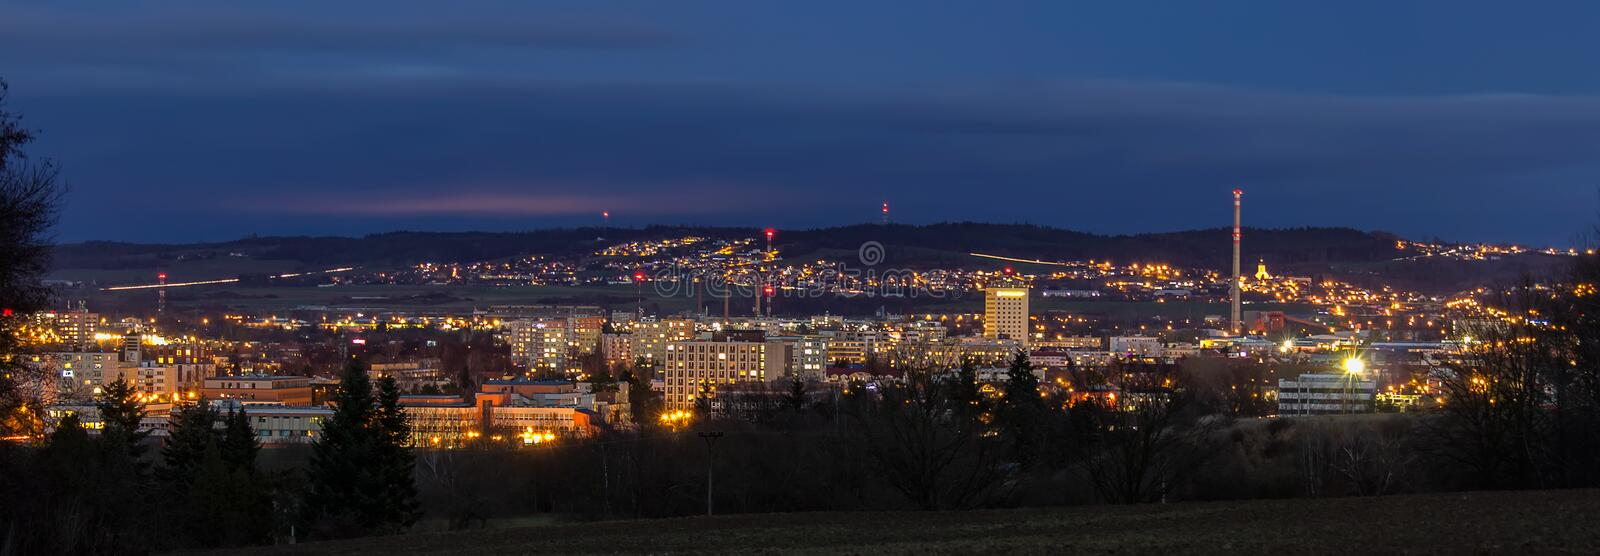 Panoramatic view to city Ceske Budejovice at night royalty free stock images